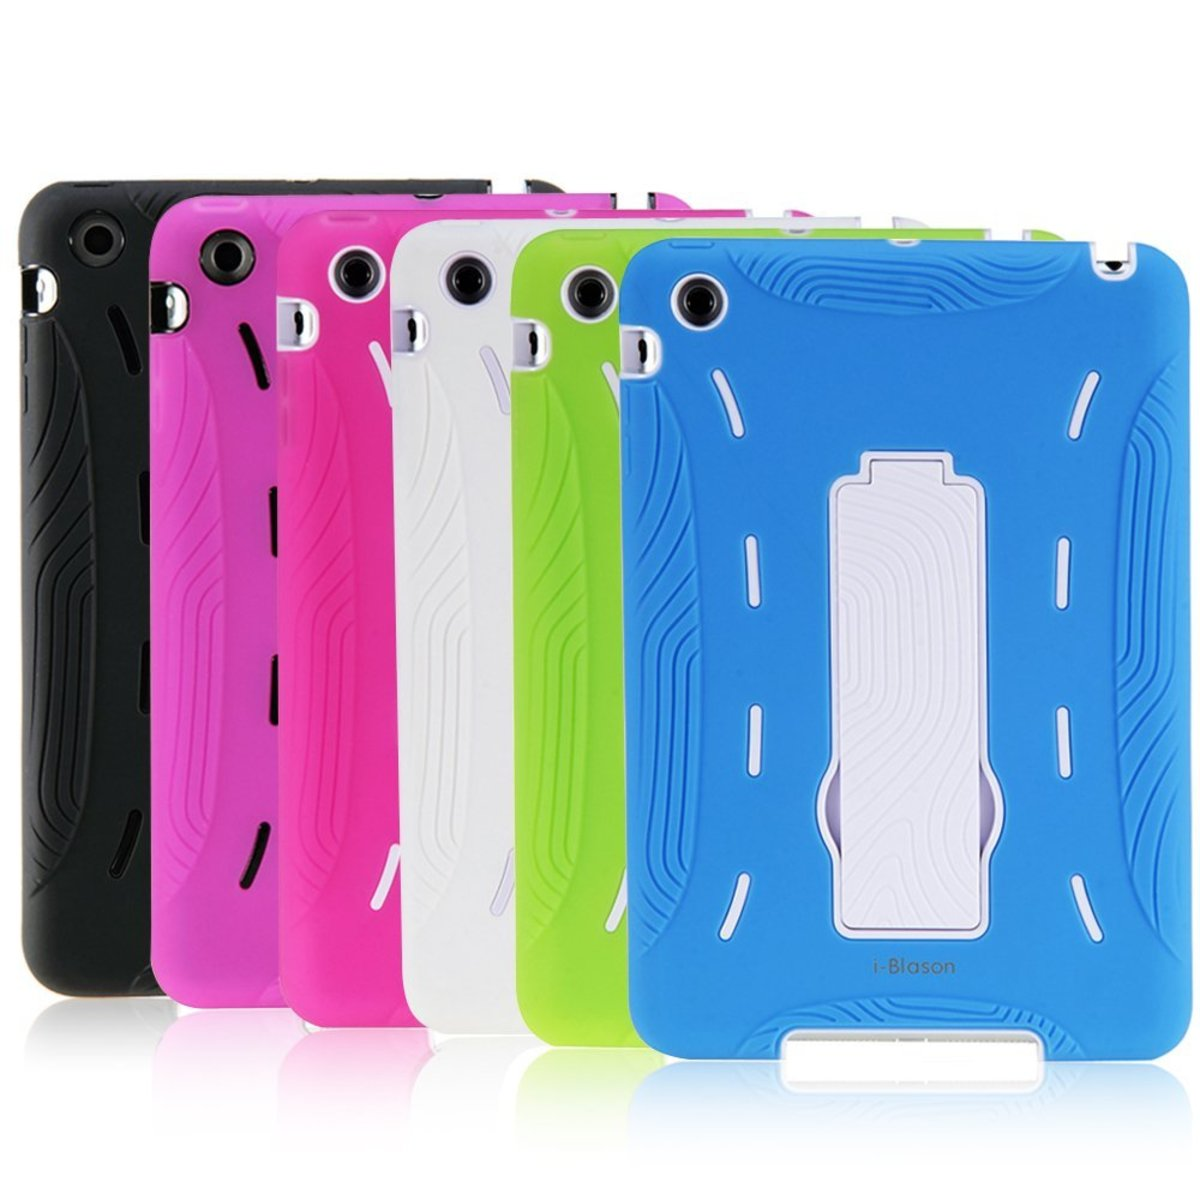 iBlazon ipad mini case colors, ideal for kids